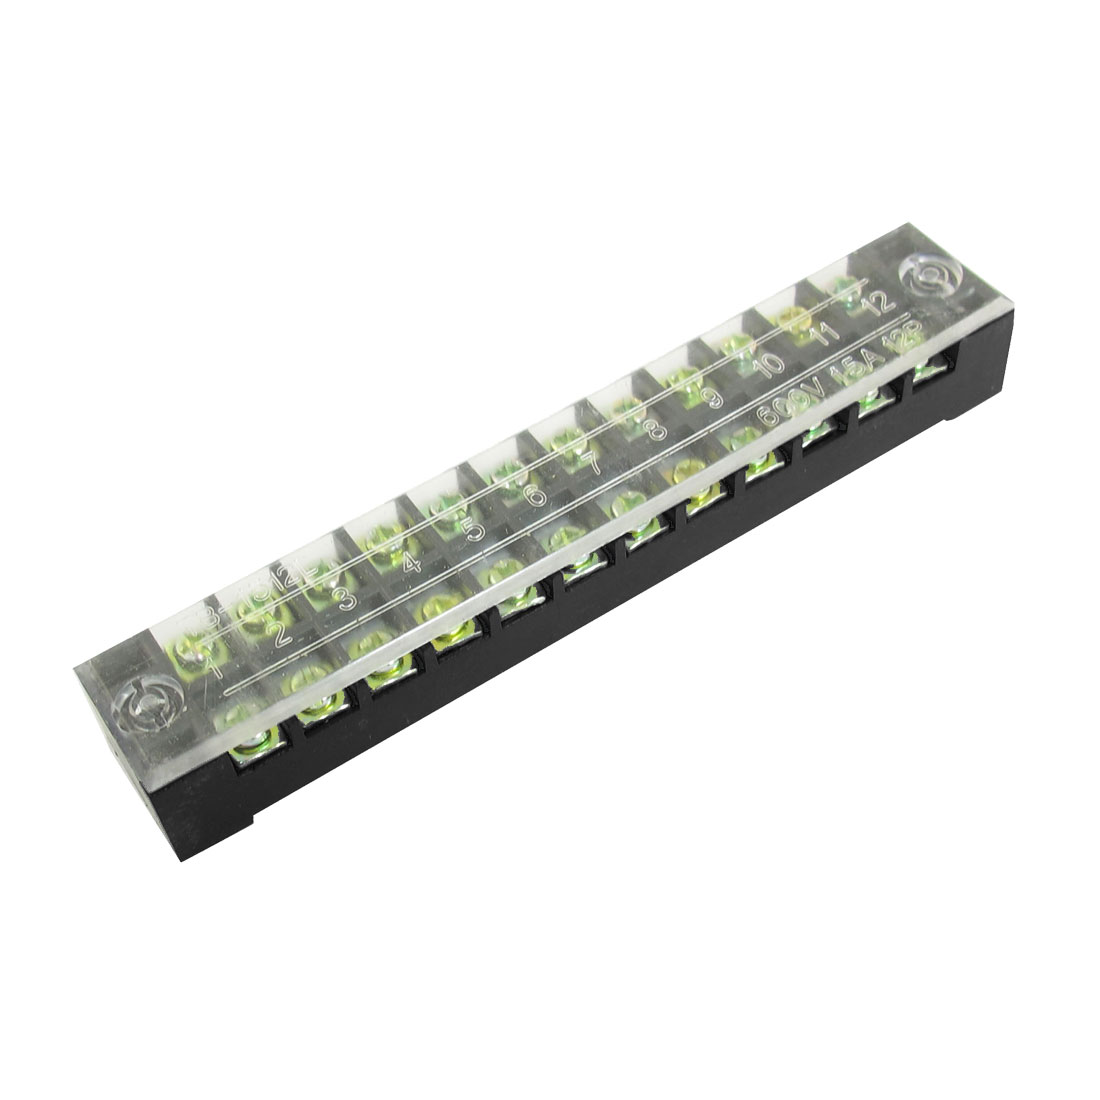 600V 15A 12 Positions Double Rows 24 Screw Covered Terminal Barrier Block Cable Board